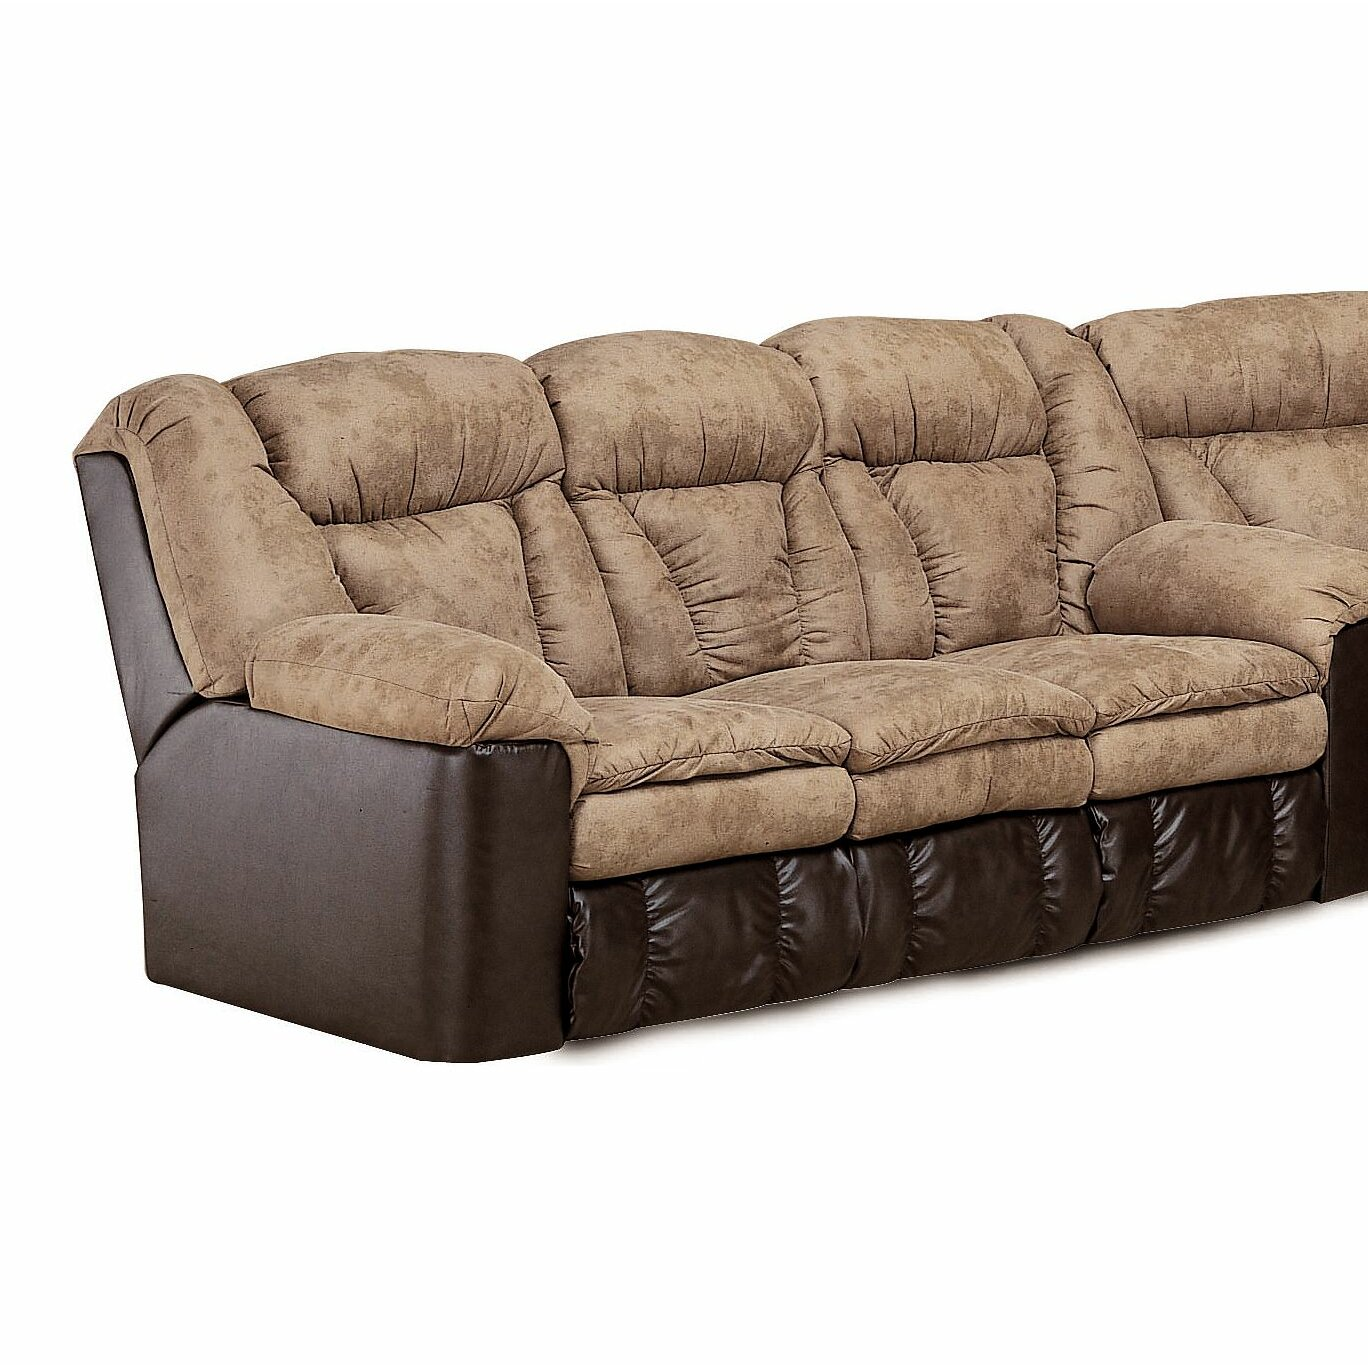 Lane furniture talon sectional for Lane furniture